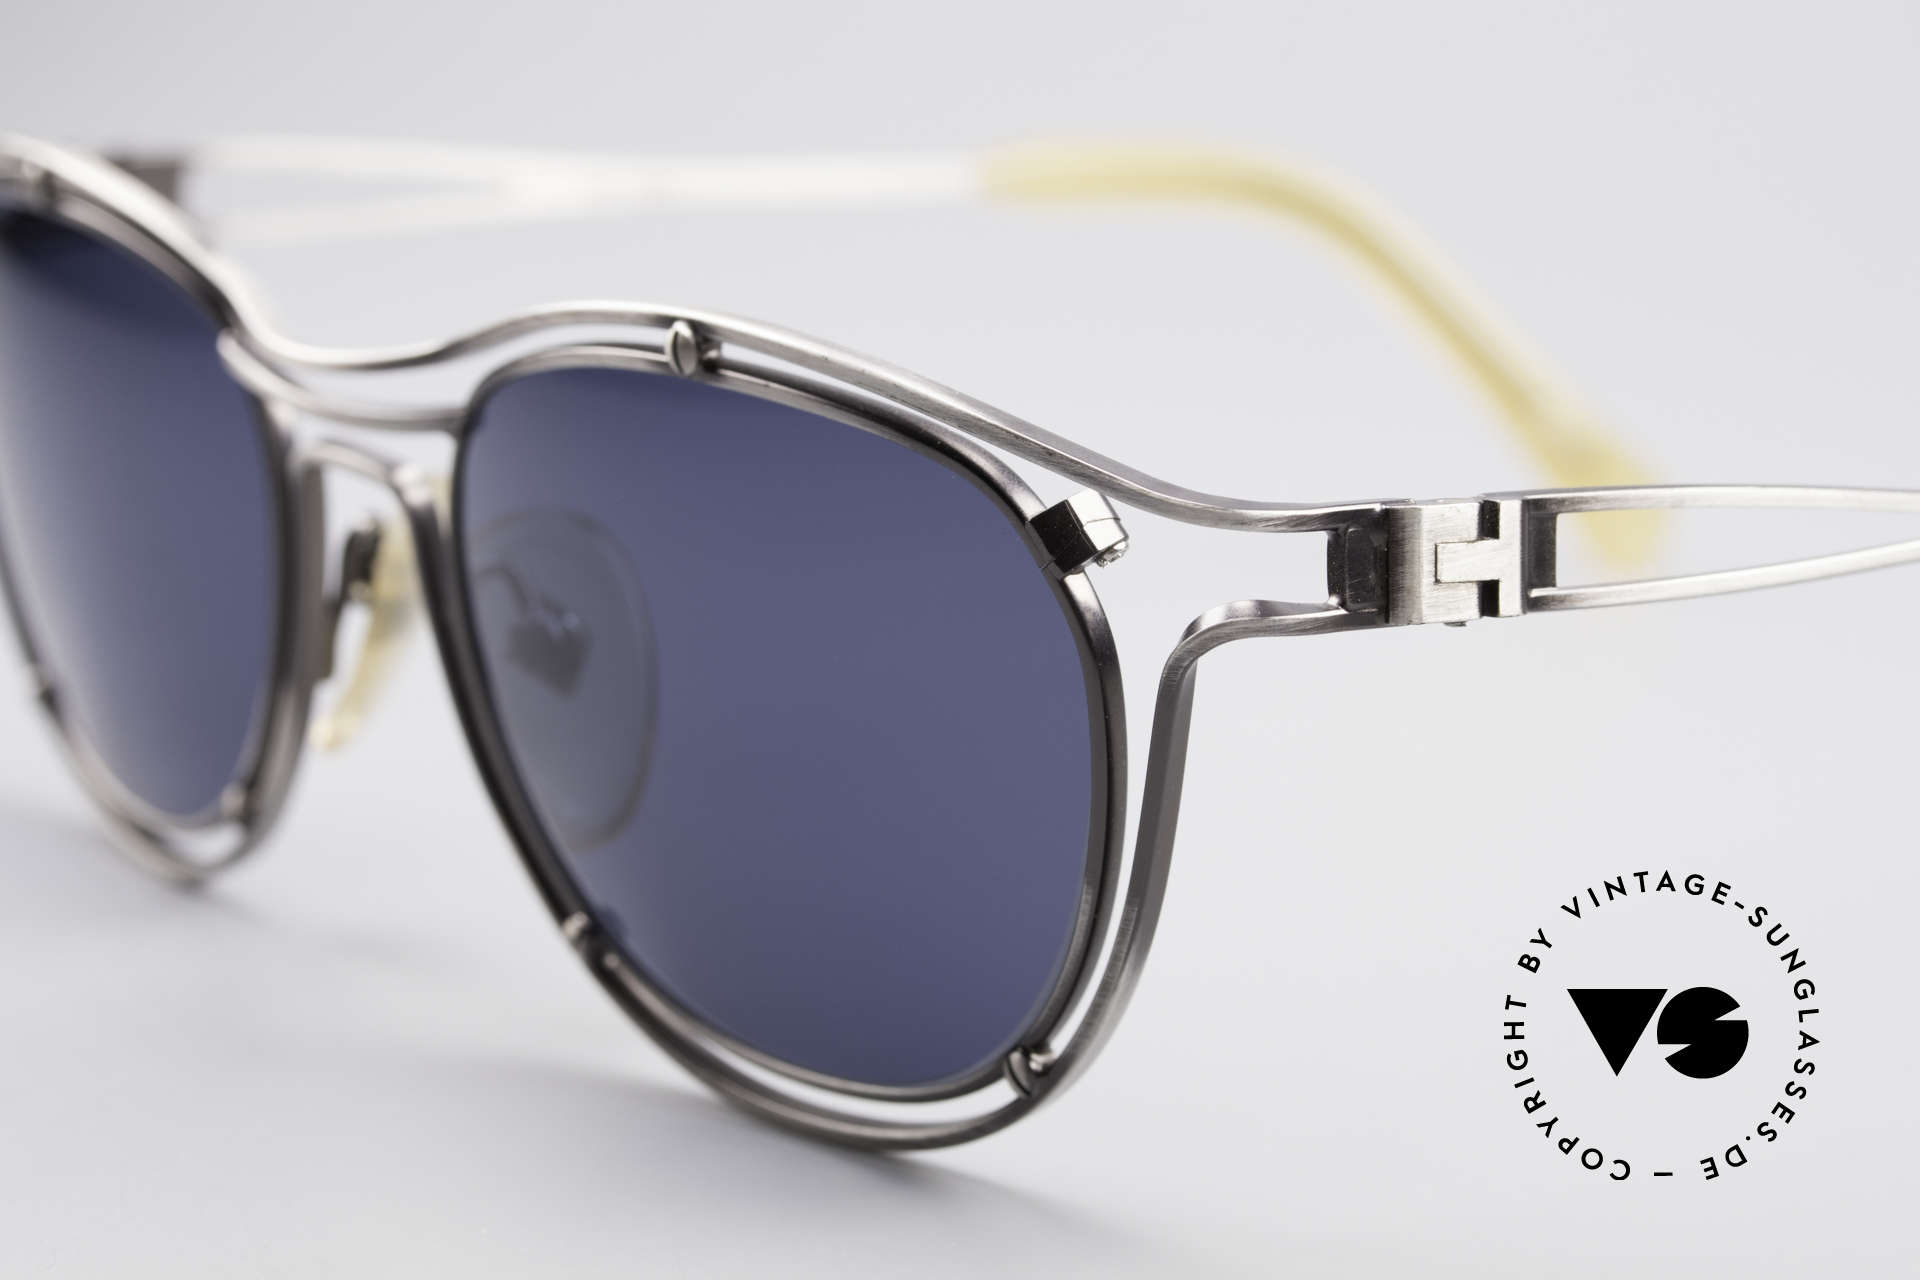 Jean Paul Gaultier 56-2176 True Designer Sunglasses, enormous quality made in Japan; U must feel this!, Made for Men and Women